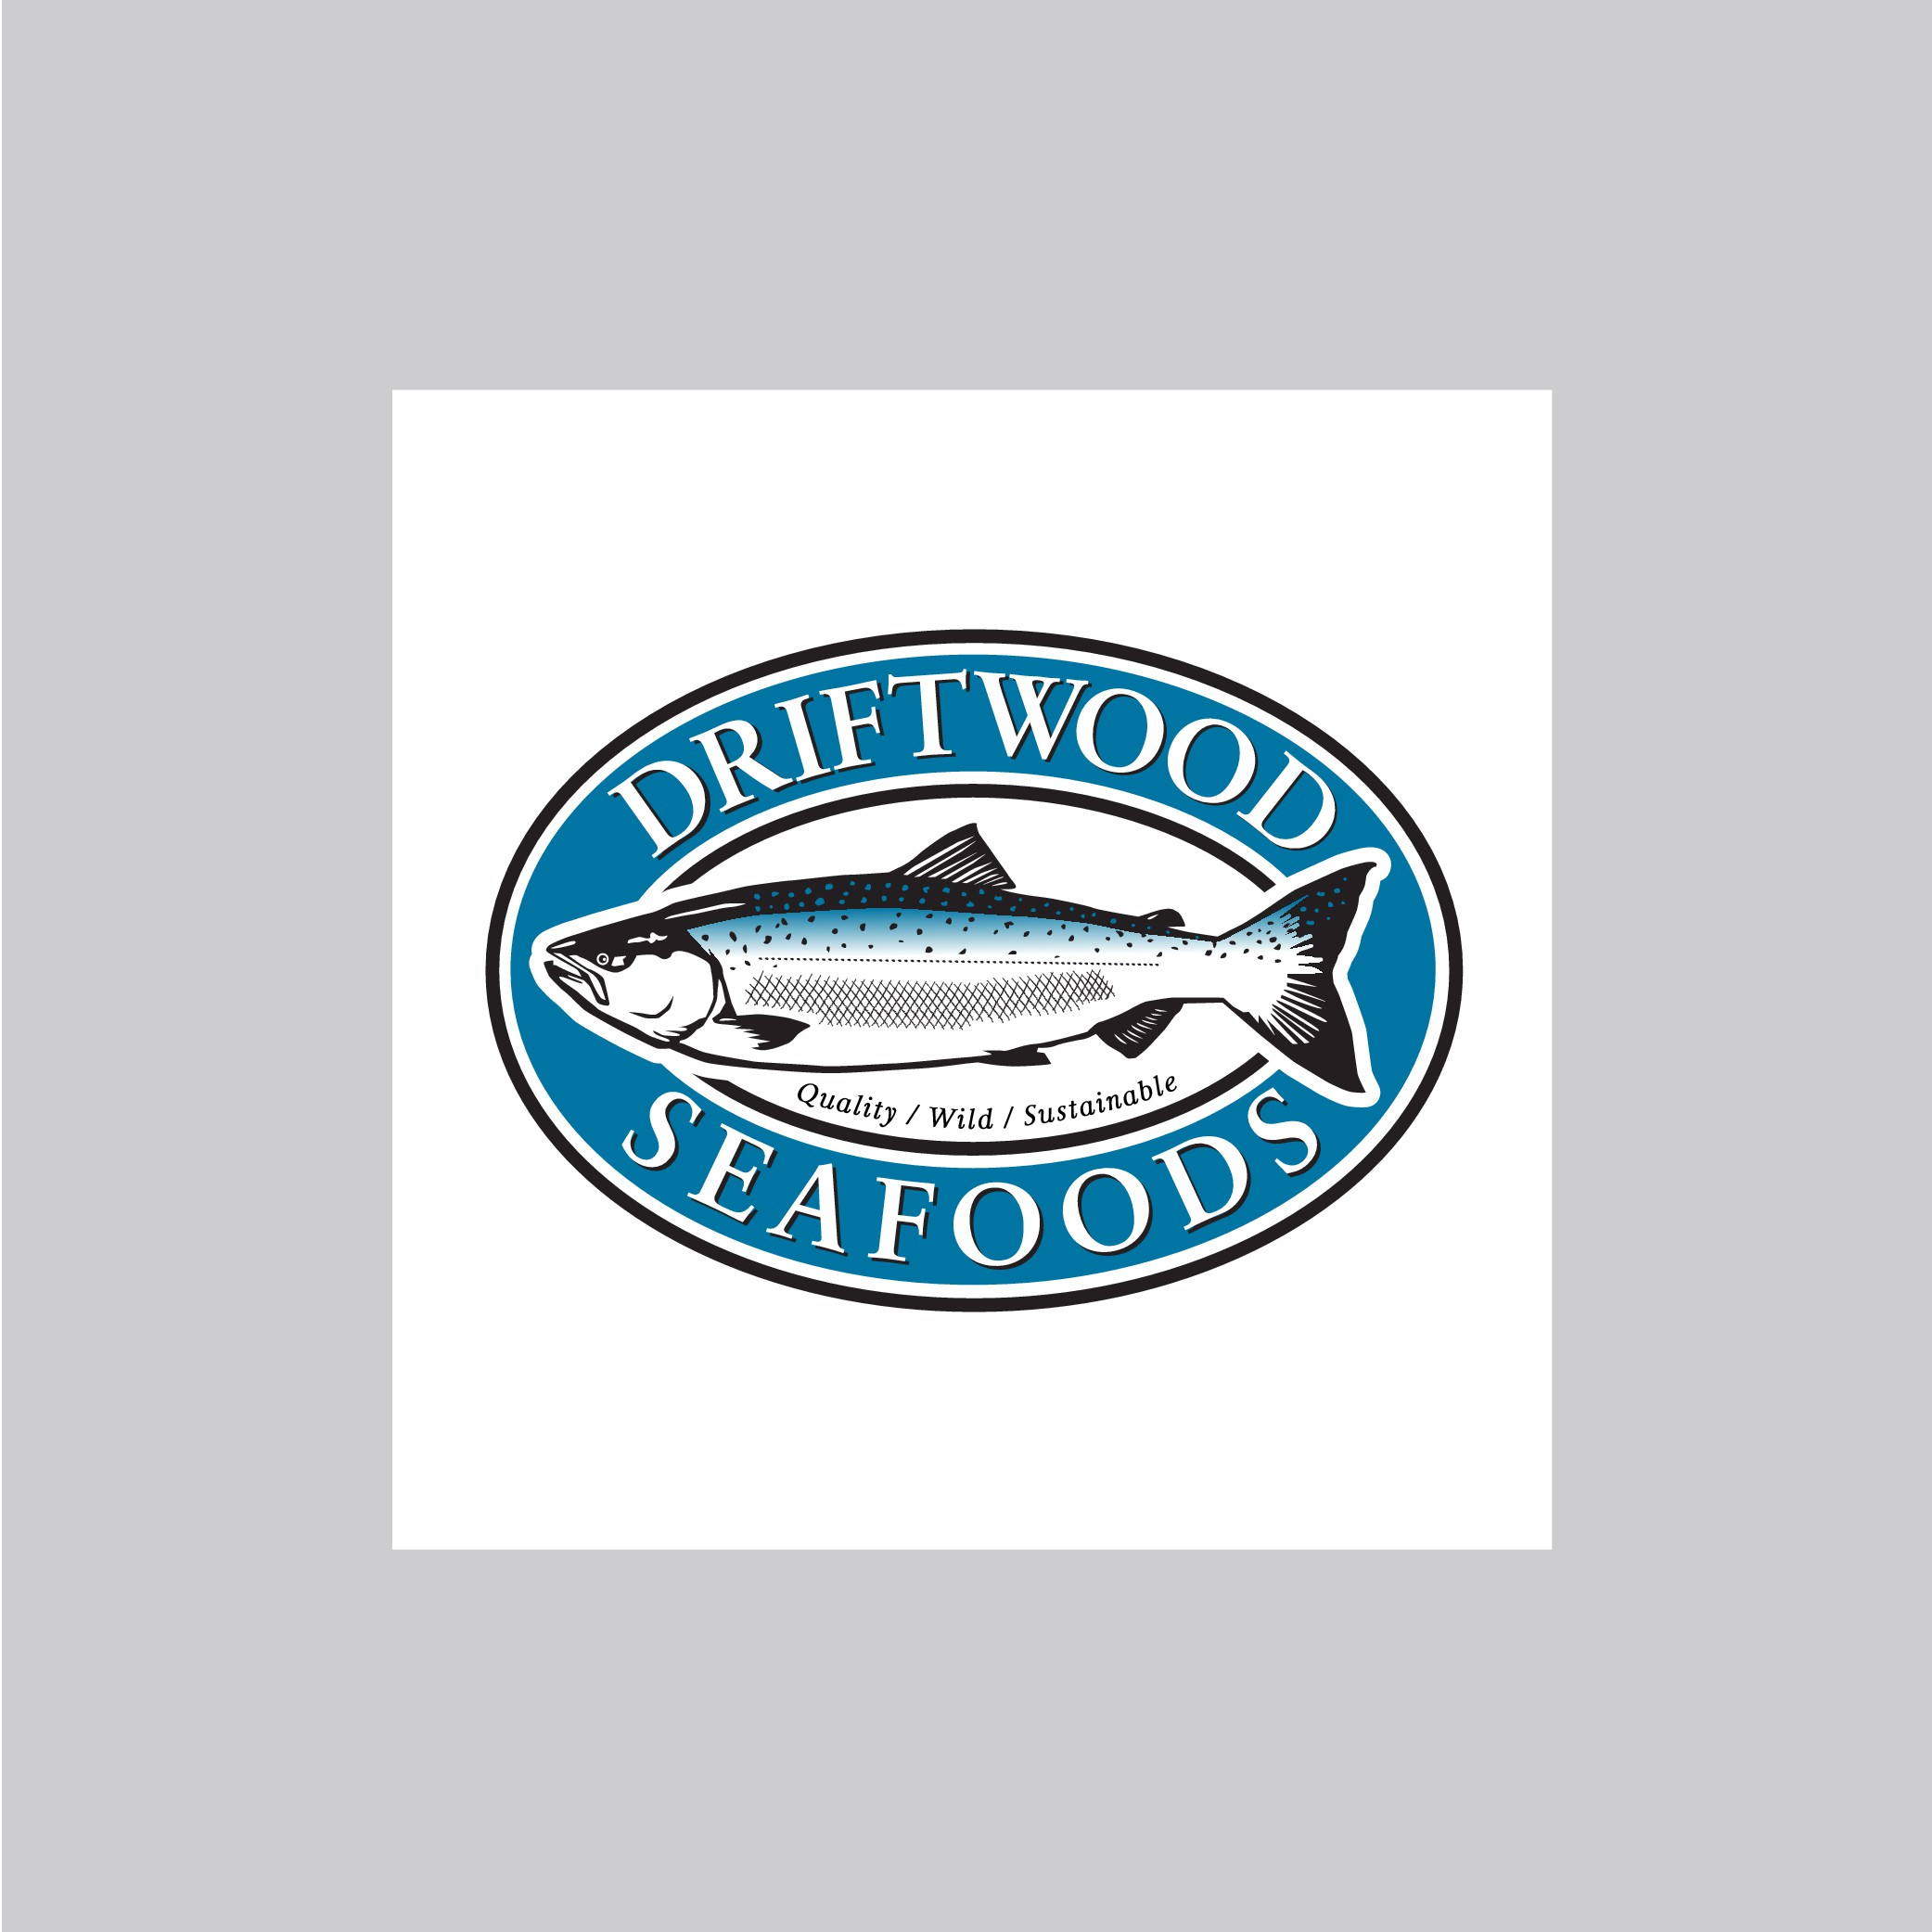 Timeless Premium Seafood Company needs logo for thriving business